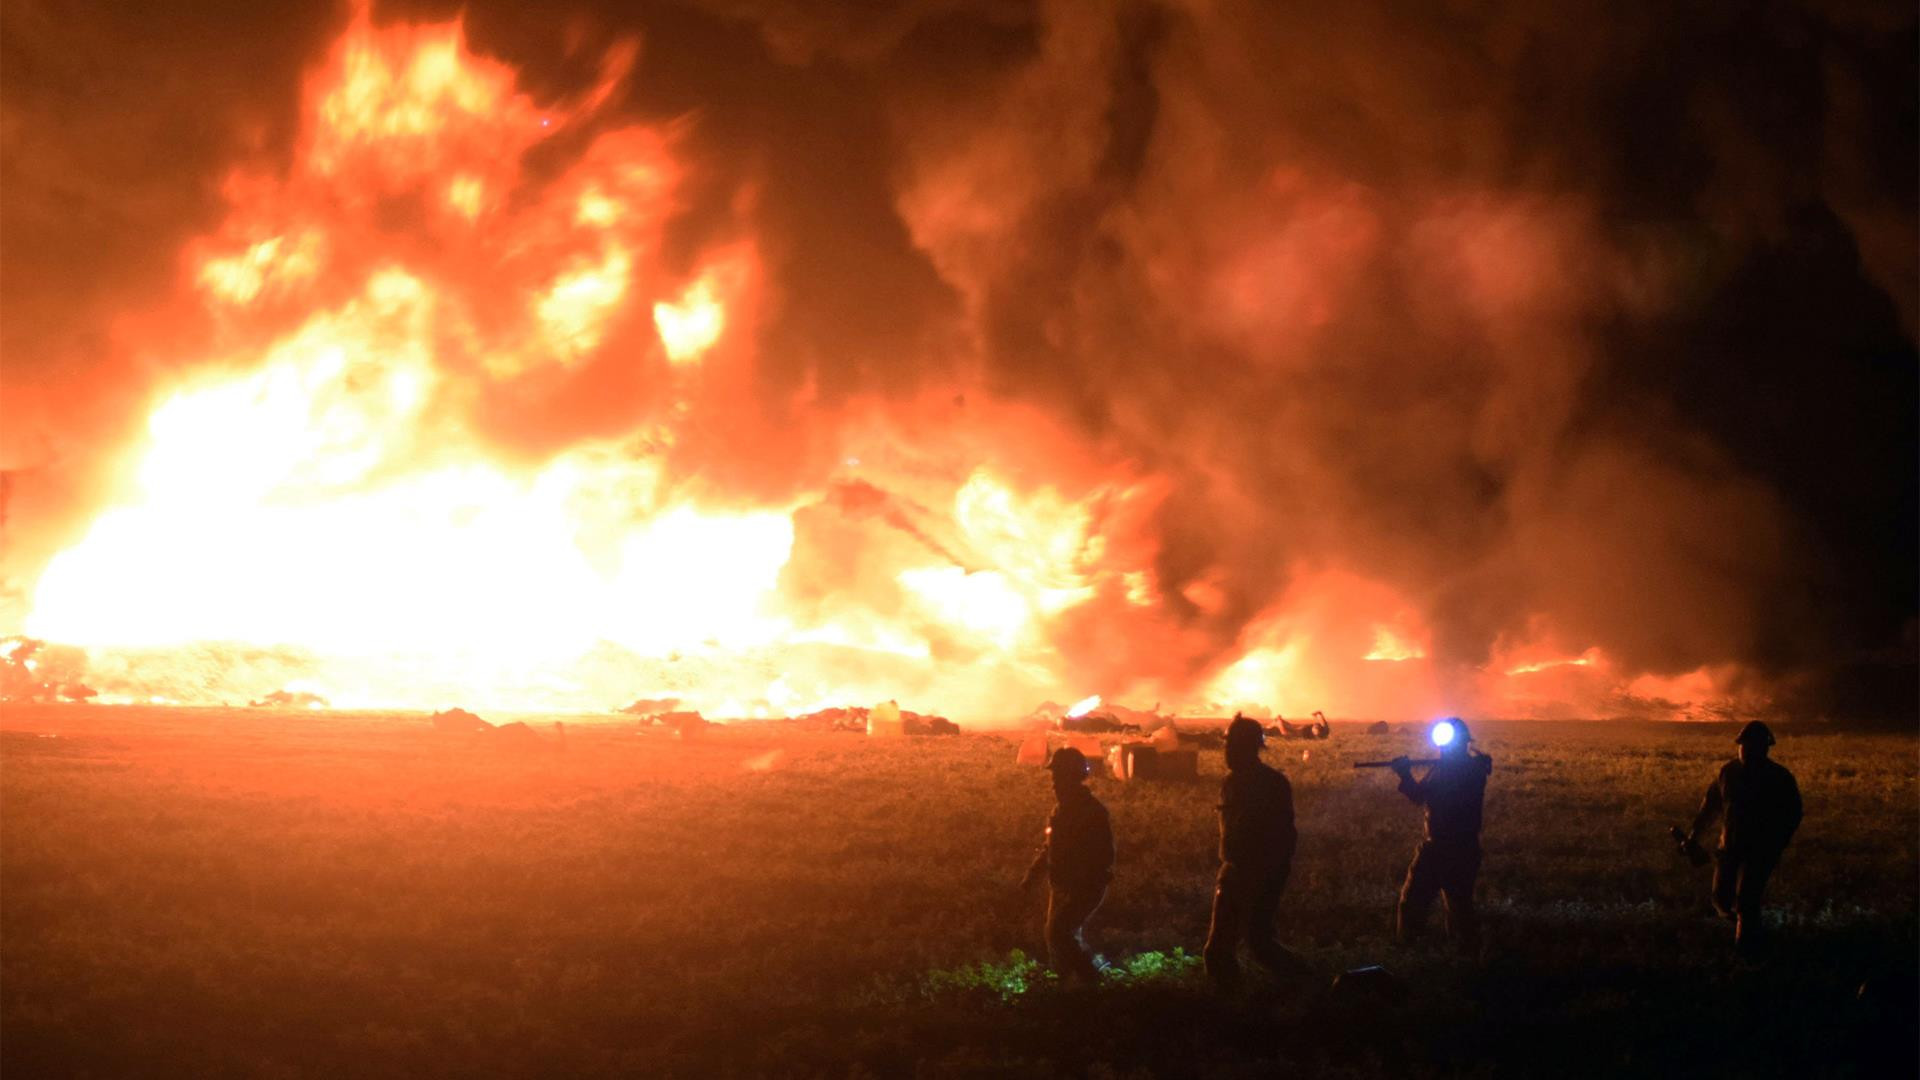 66 dead, 76 injured in ruptured pipeline explosion outside Mexico City